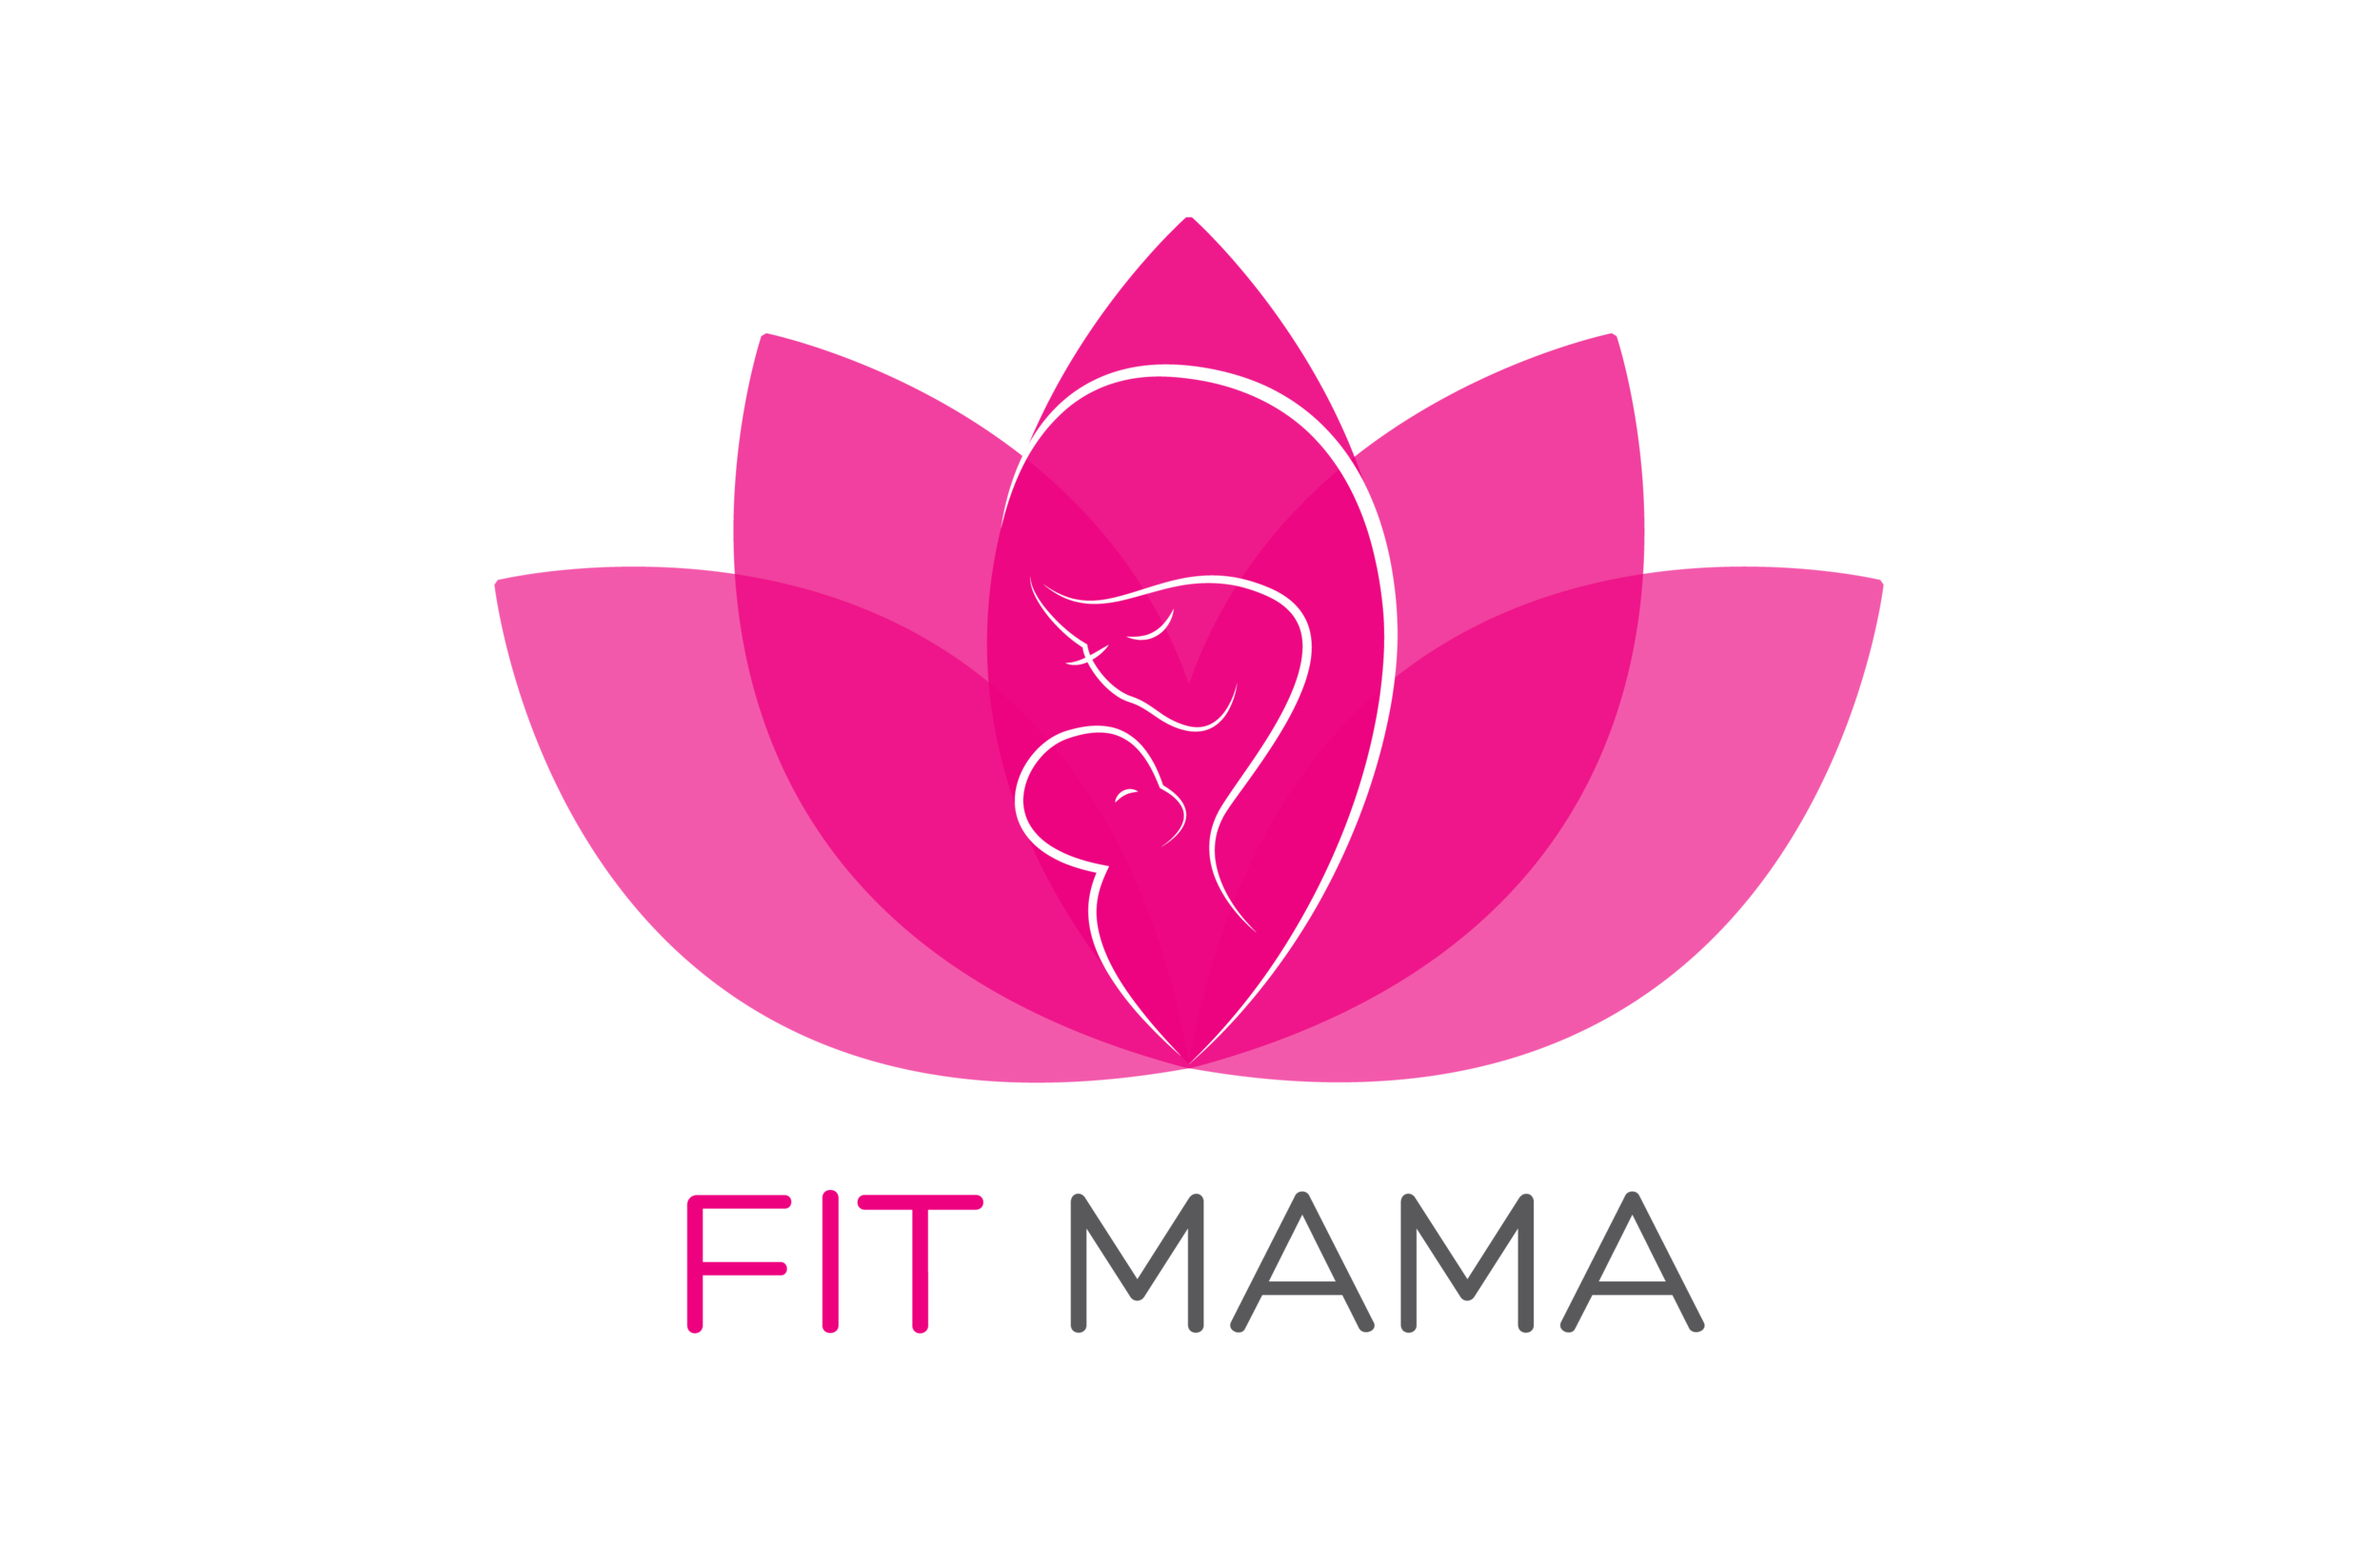 FitMama_Carousel_1-01.png